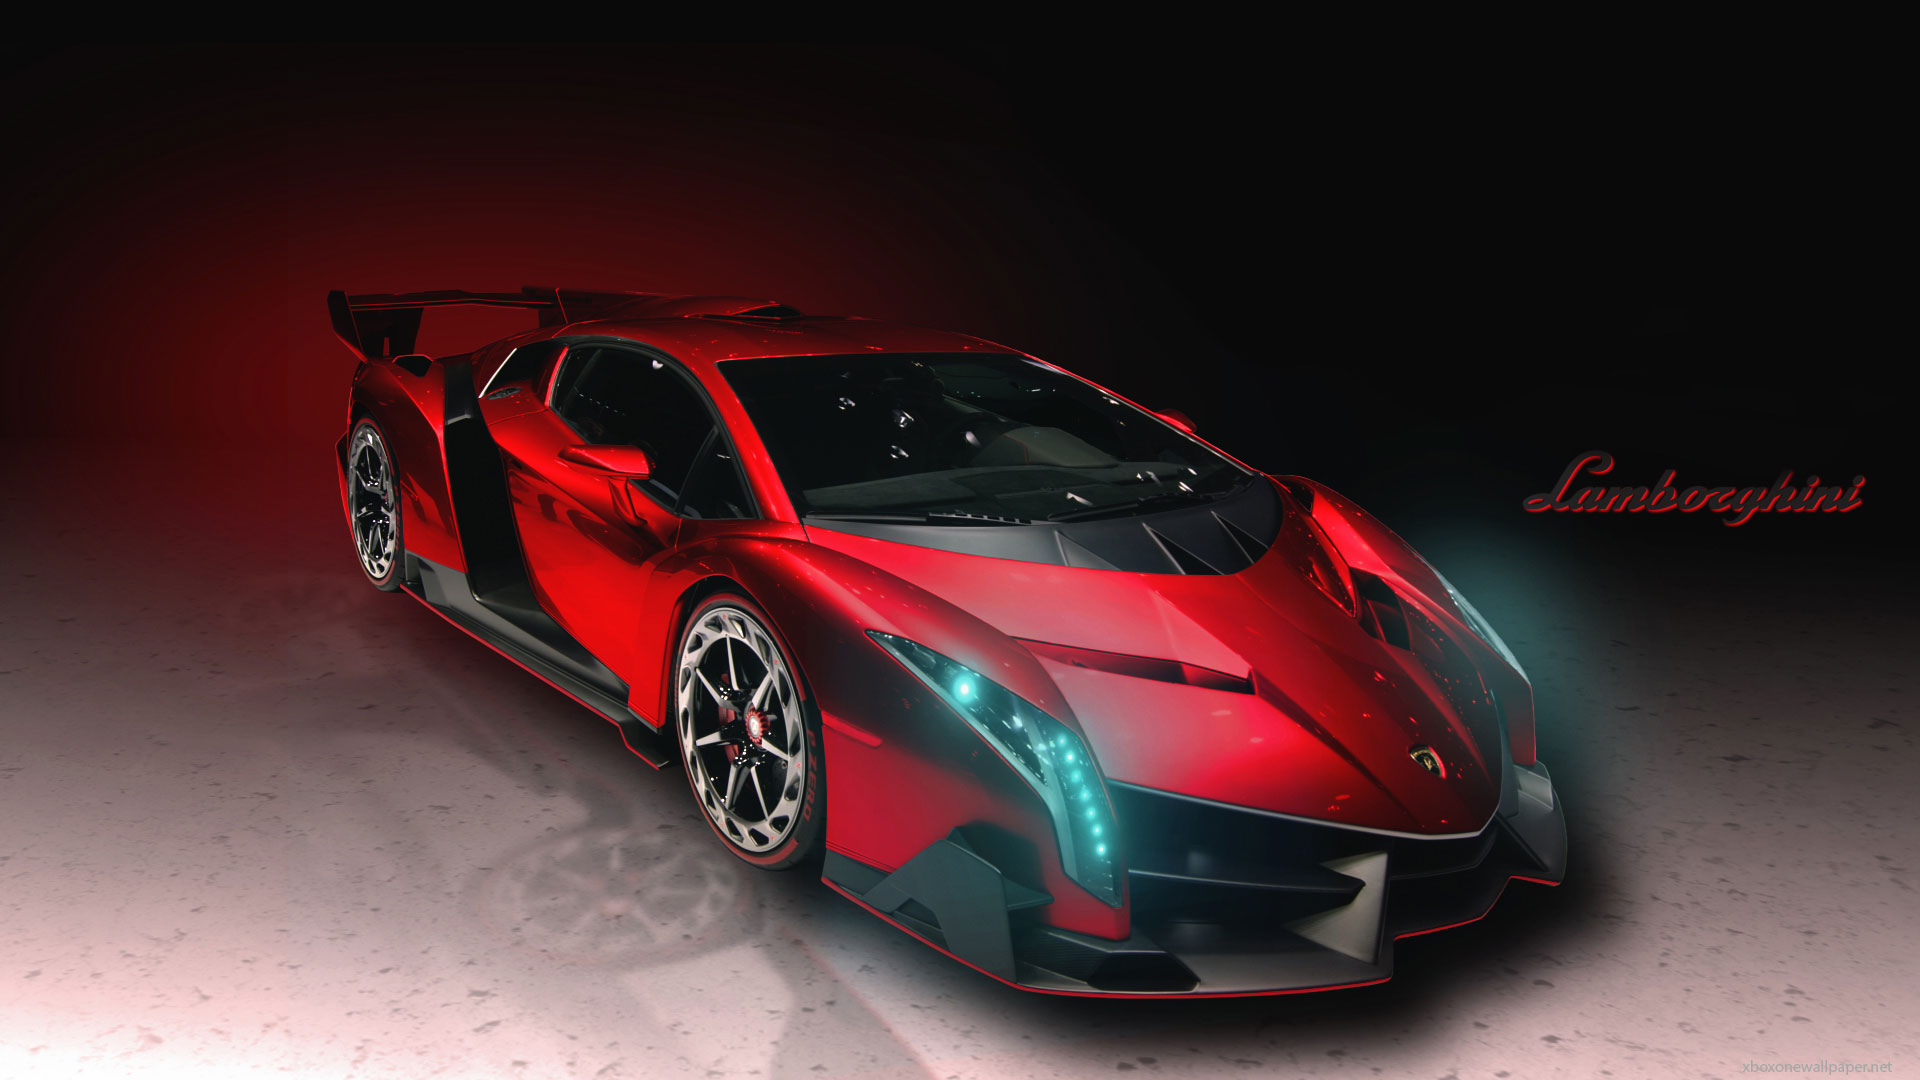 Lamborghini Veneno Wallpaper Photo HD Wallpaper 1080p 1920x1080